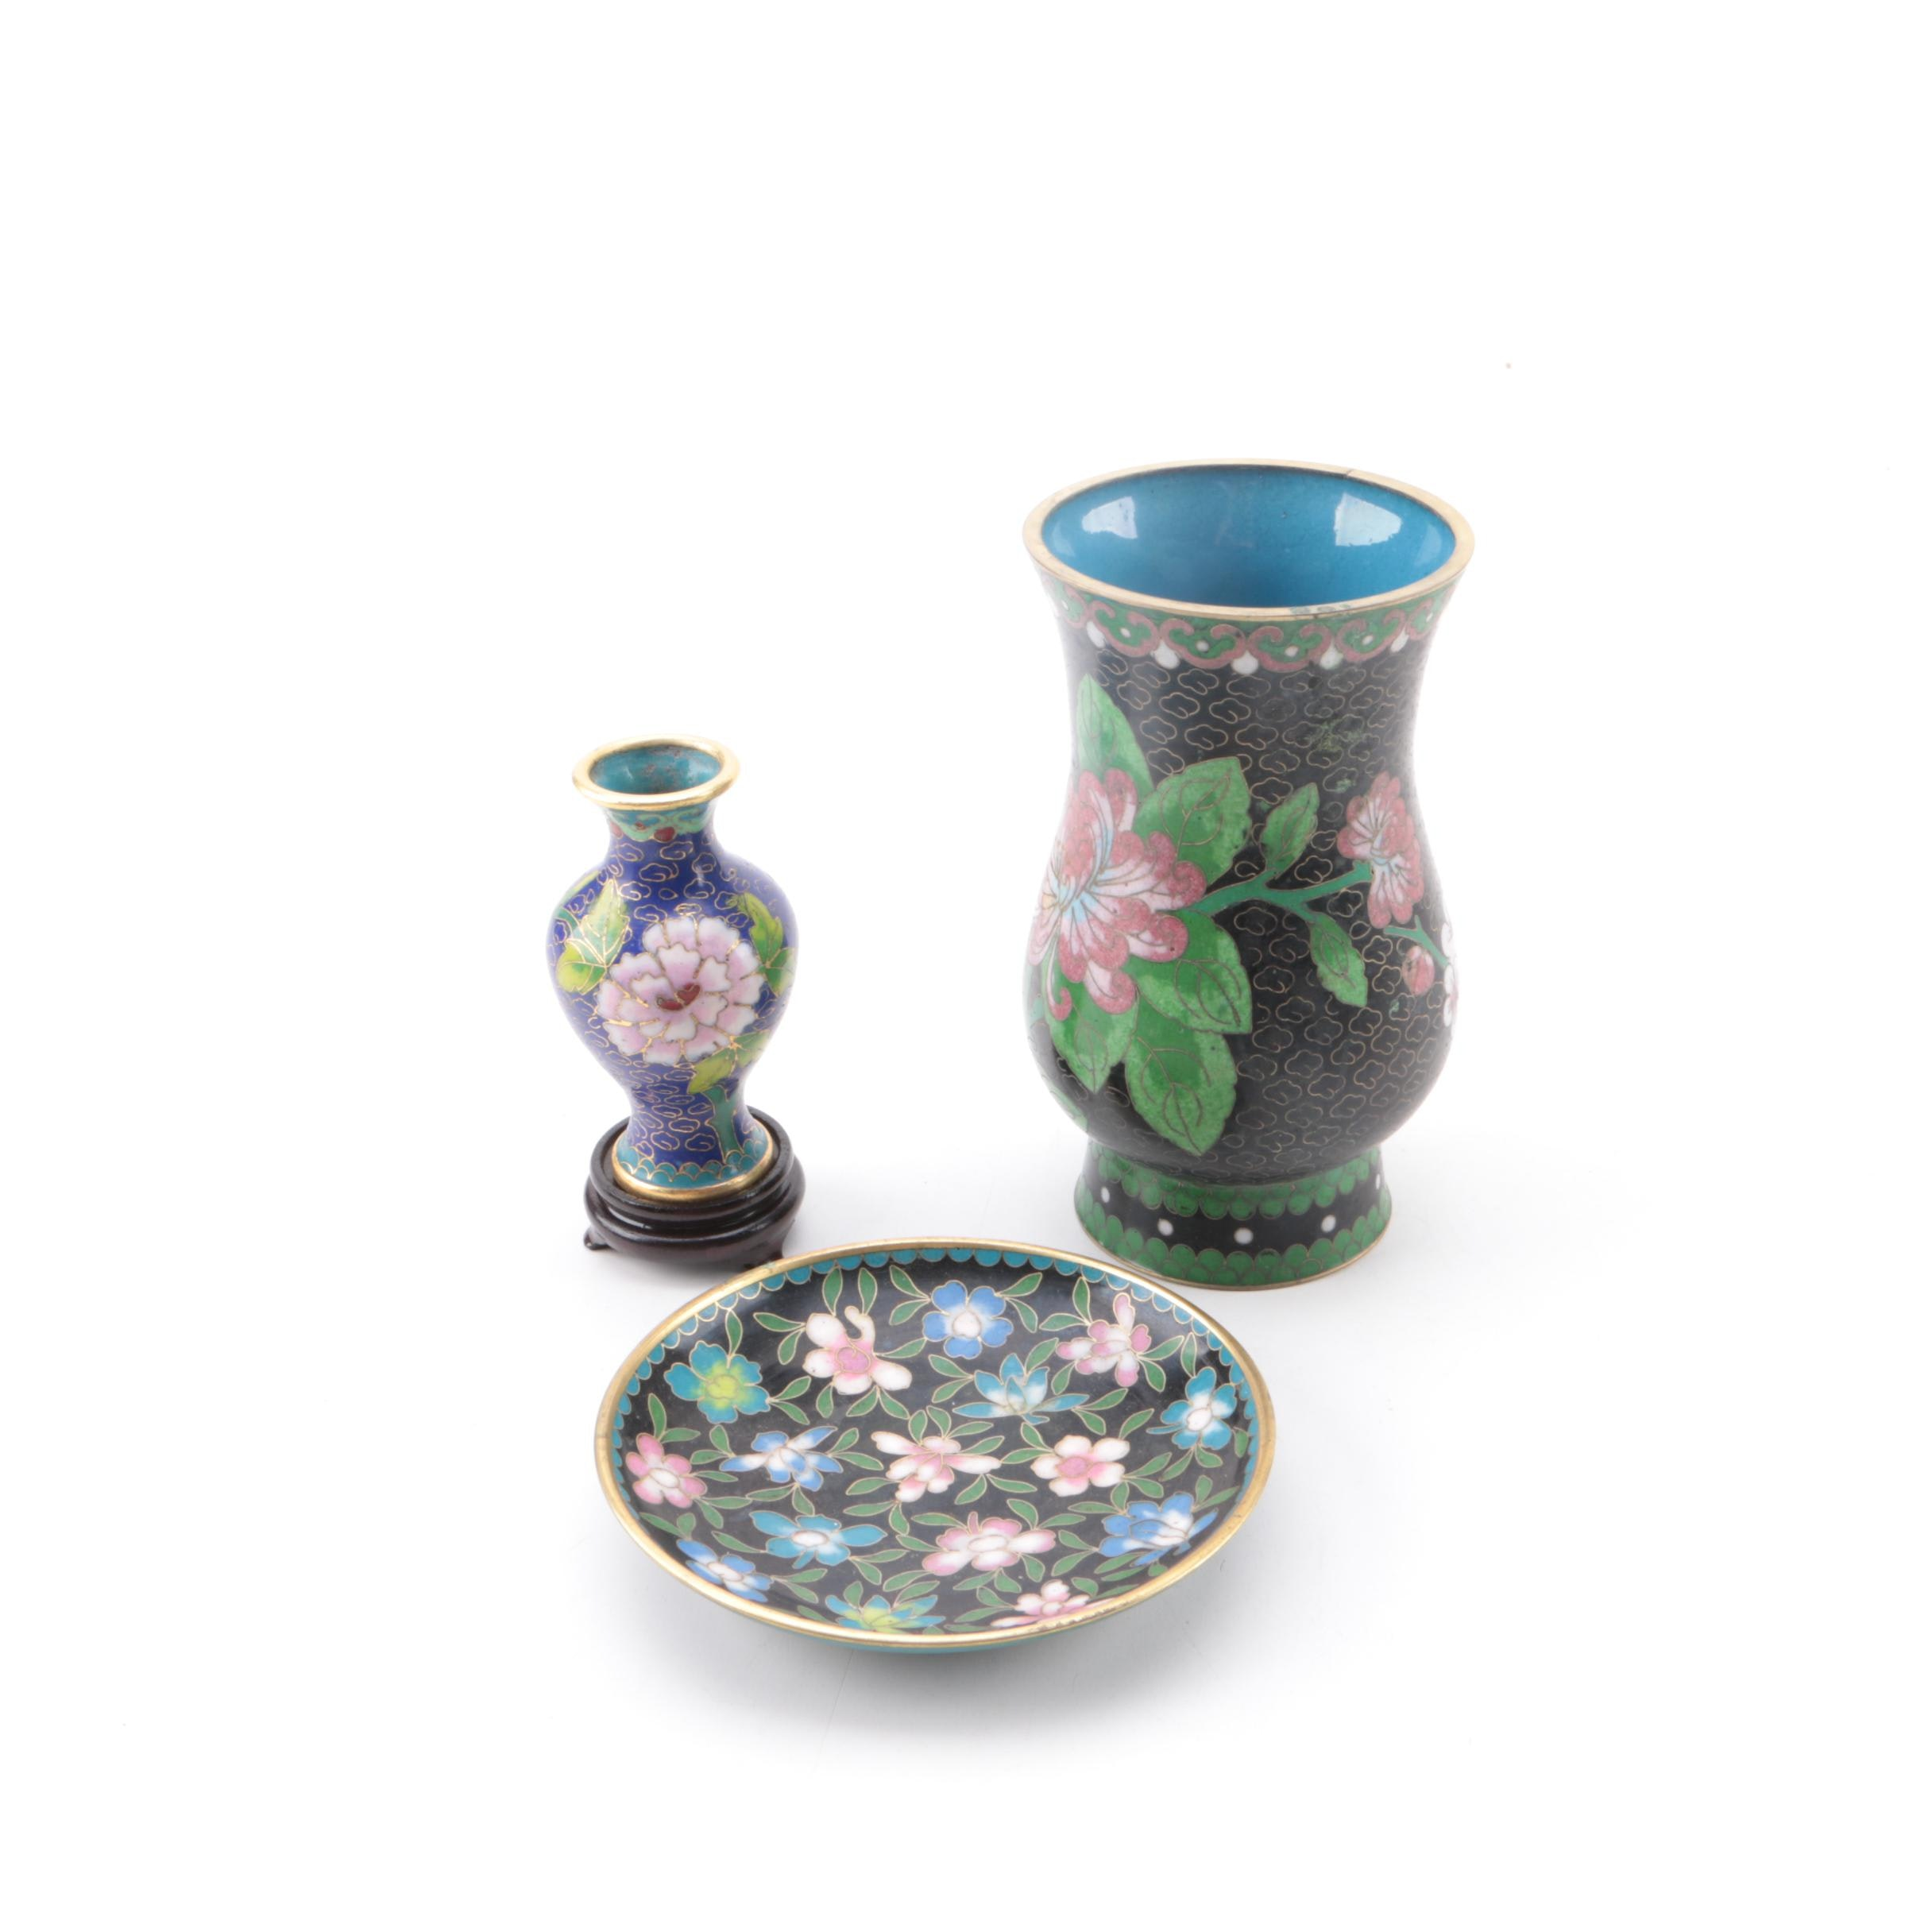 Chinese Cloisonne Vases and Plate